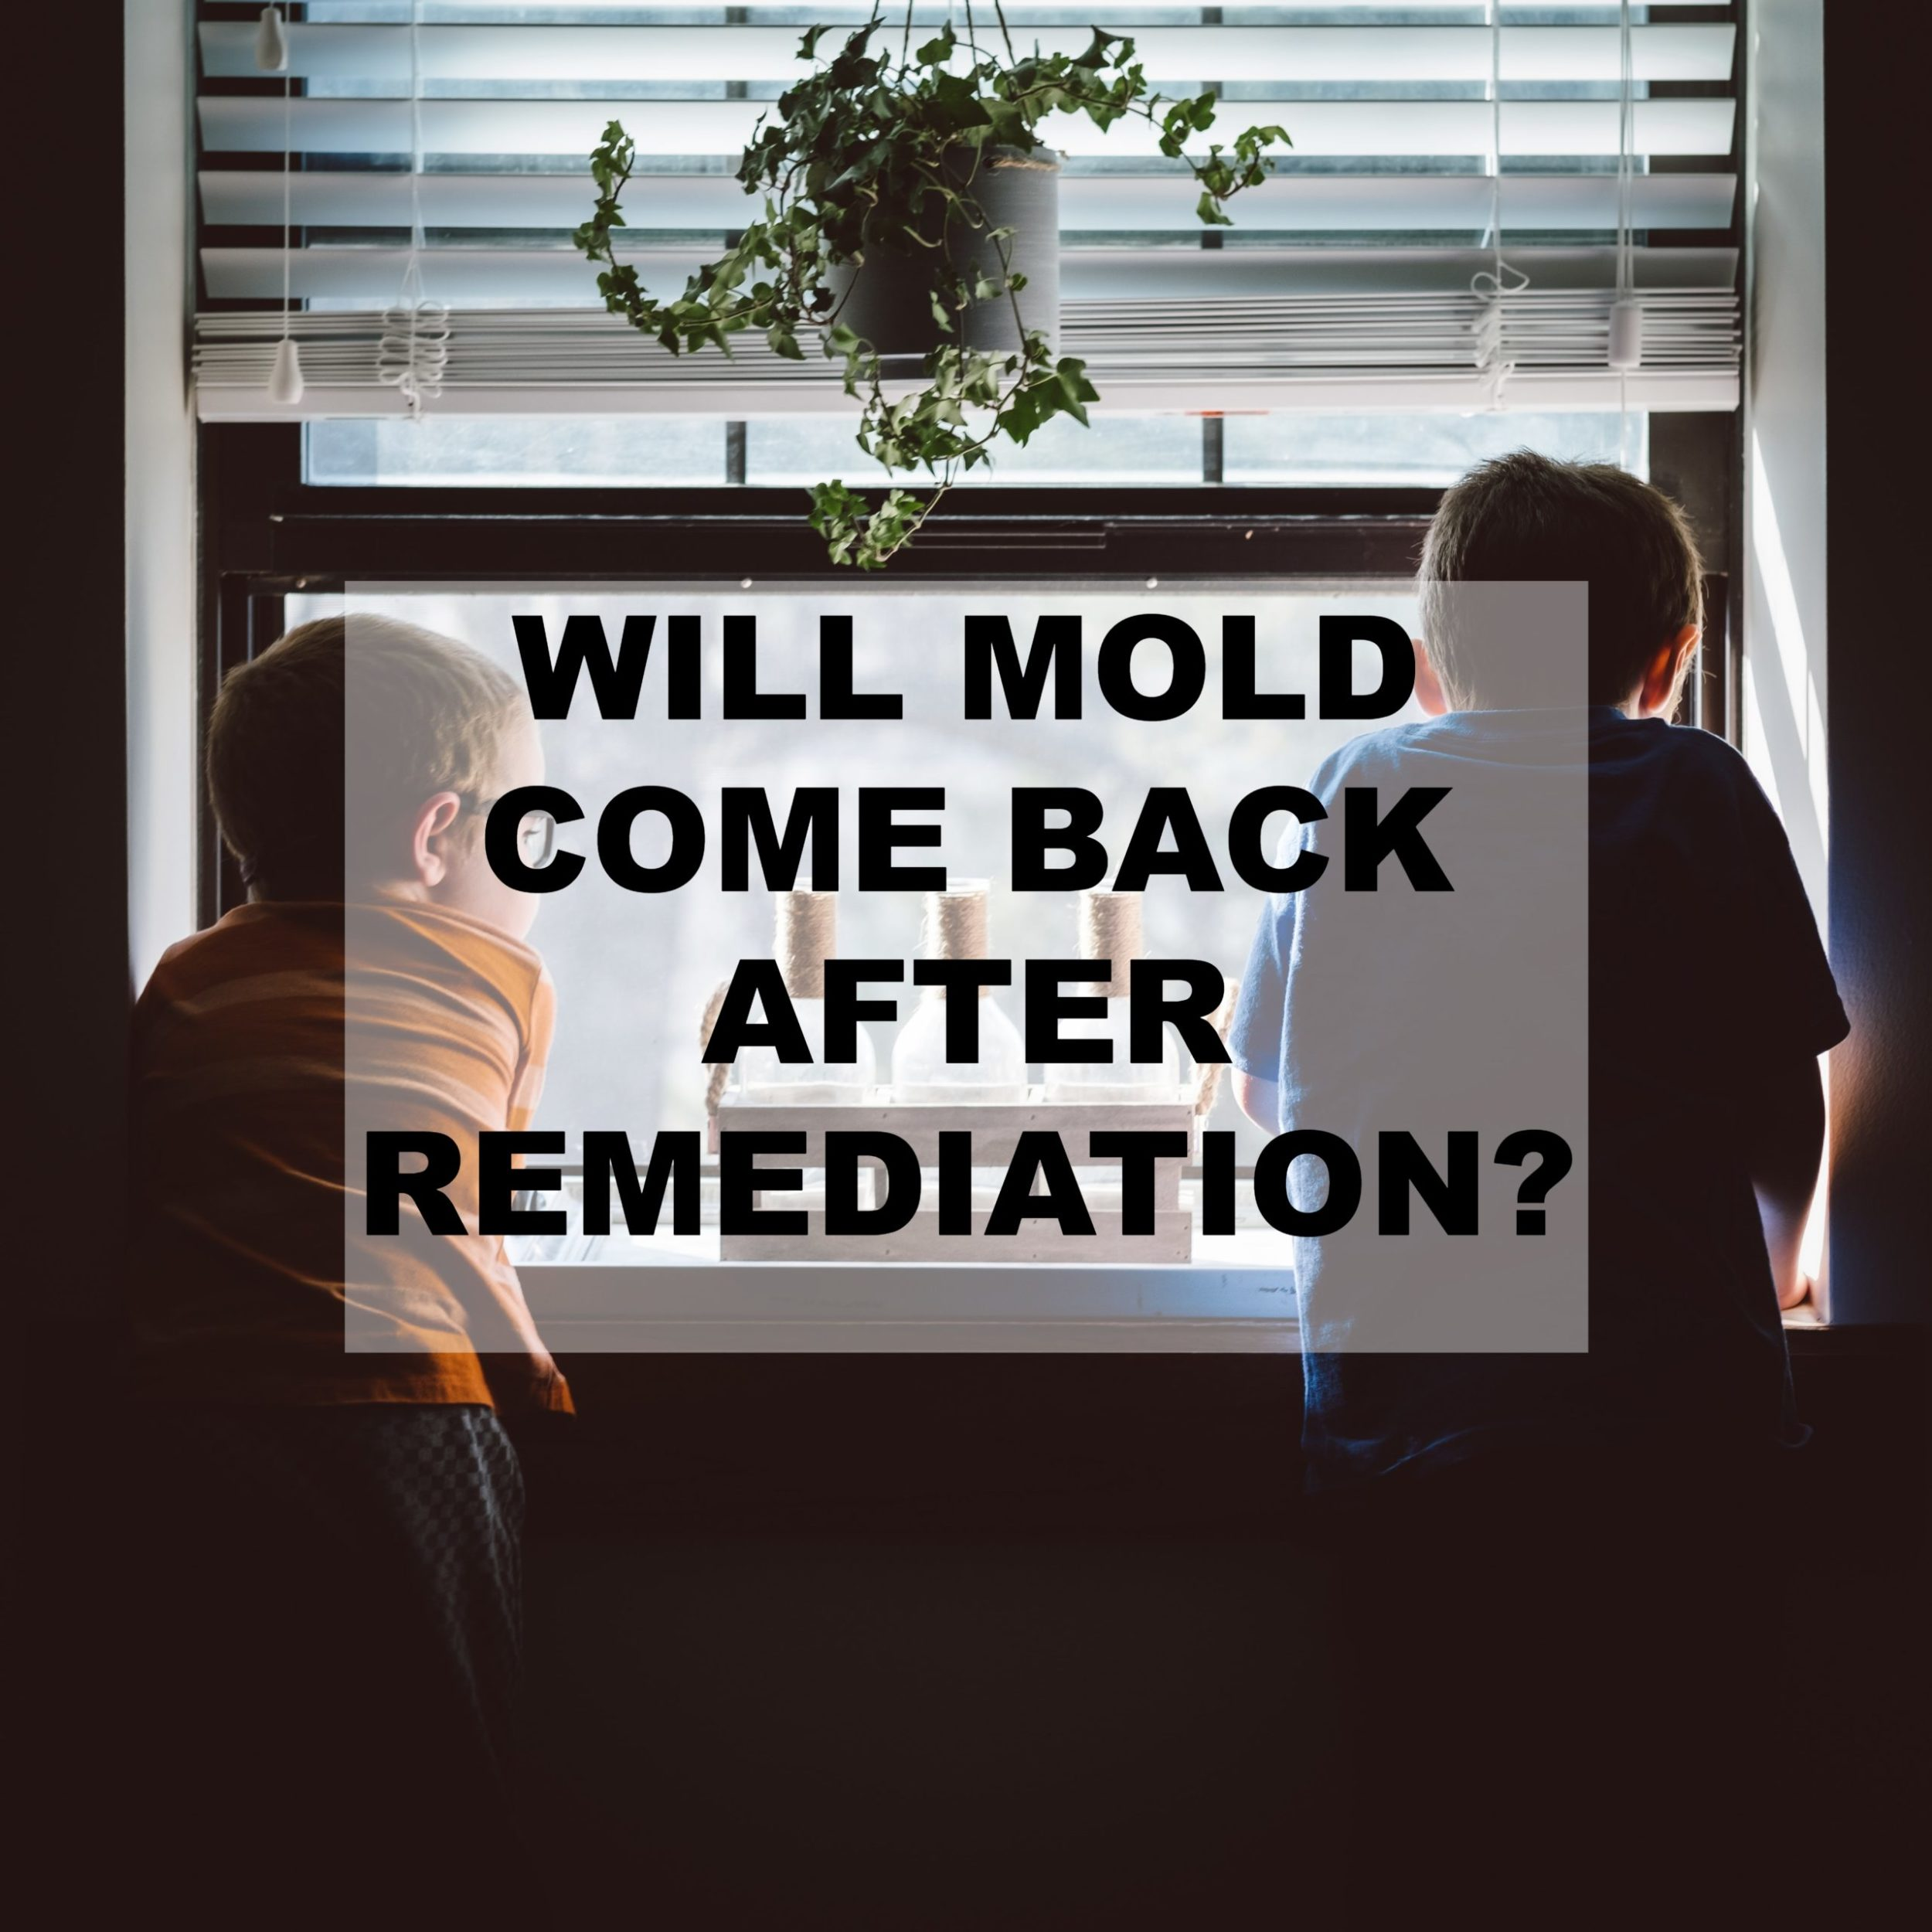 Will mold come back after remediation